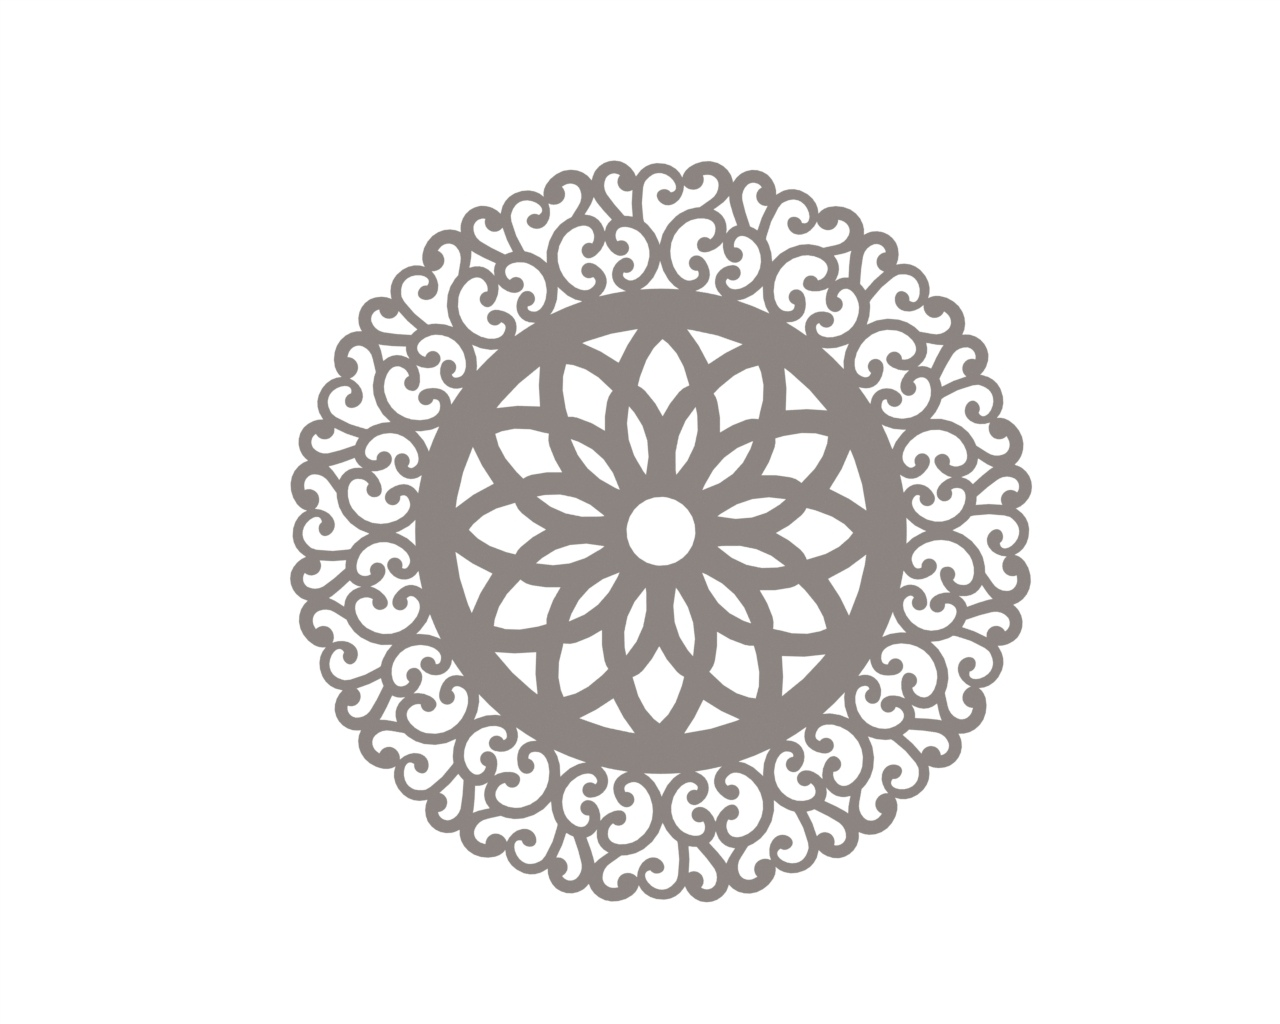 Mandala of circle art Ornament CDR File